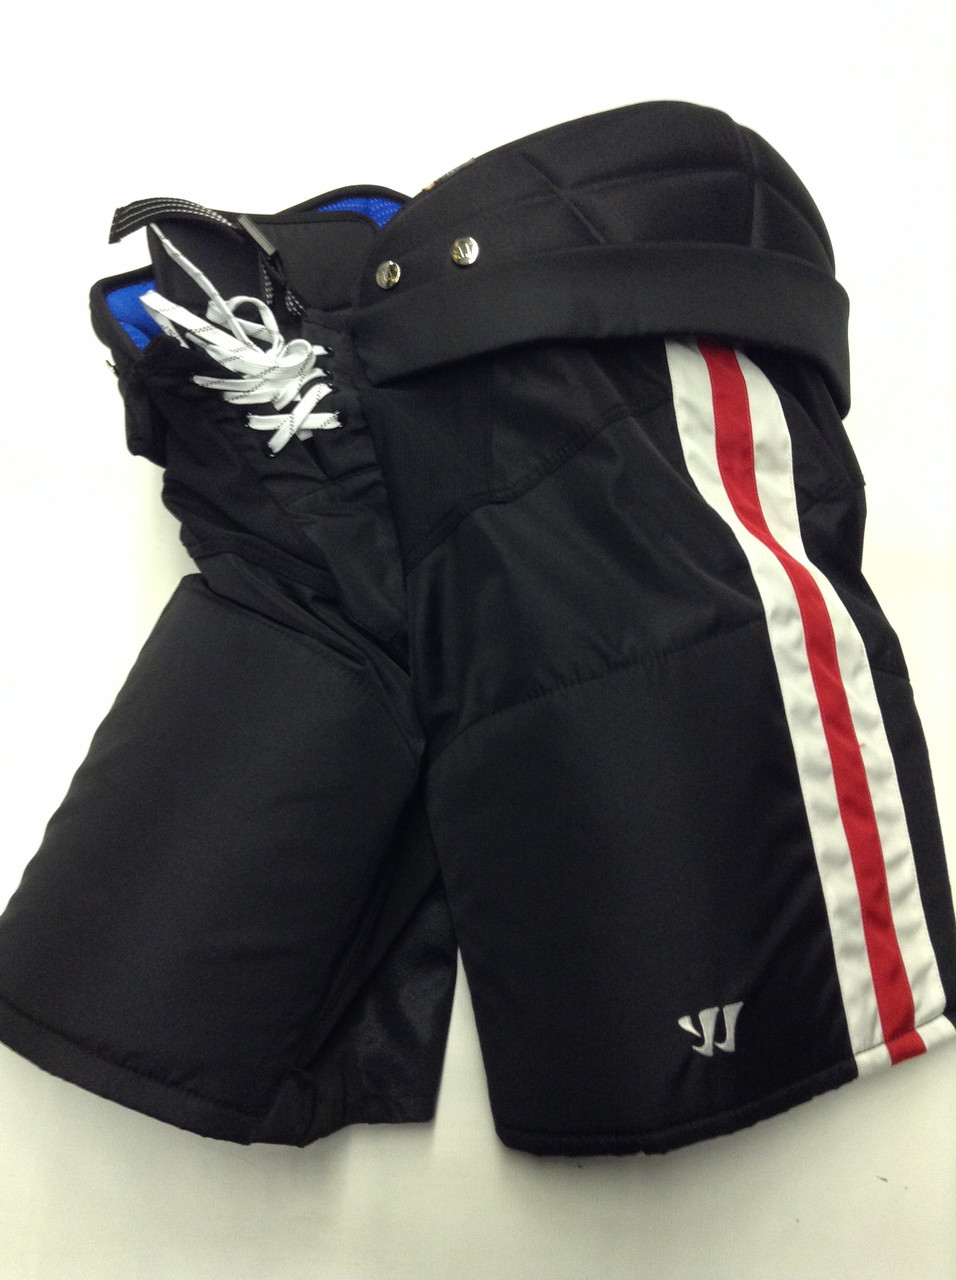 c779232af6f ... Warrior Covert QRL Custom Pro Hockey Pants Large Northeastern Huskies  New. Image 1. Hover over image to zoom